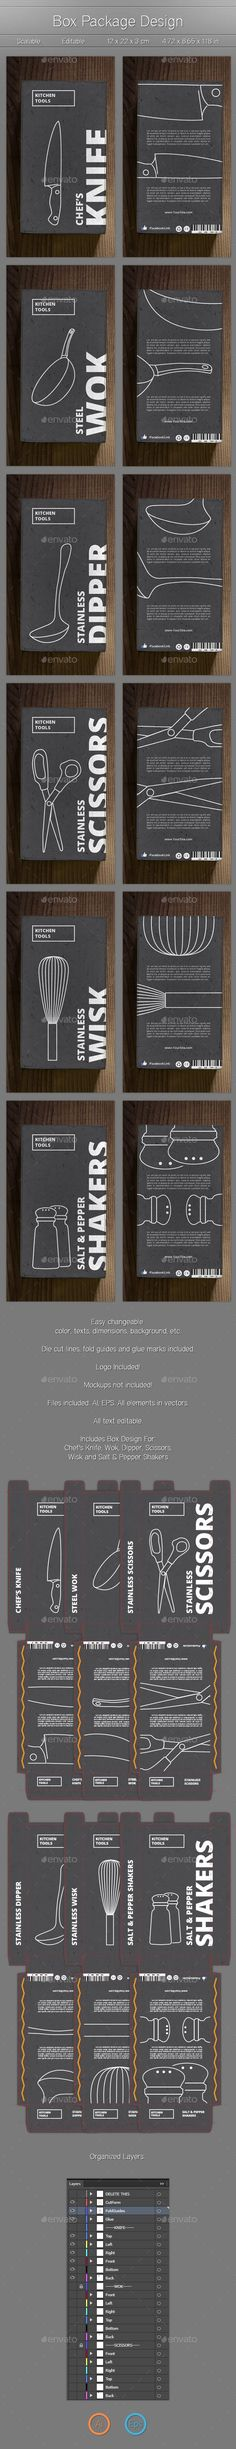 Product Box Design Template Vector EPS, AI. Download here: http://graphicriver.net/item/product-box-design/11358337?ref=ksioks